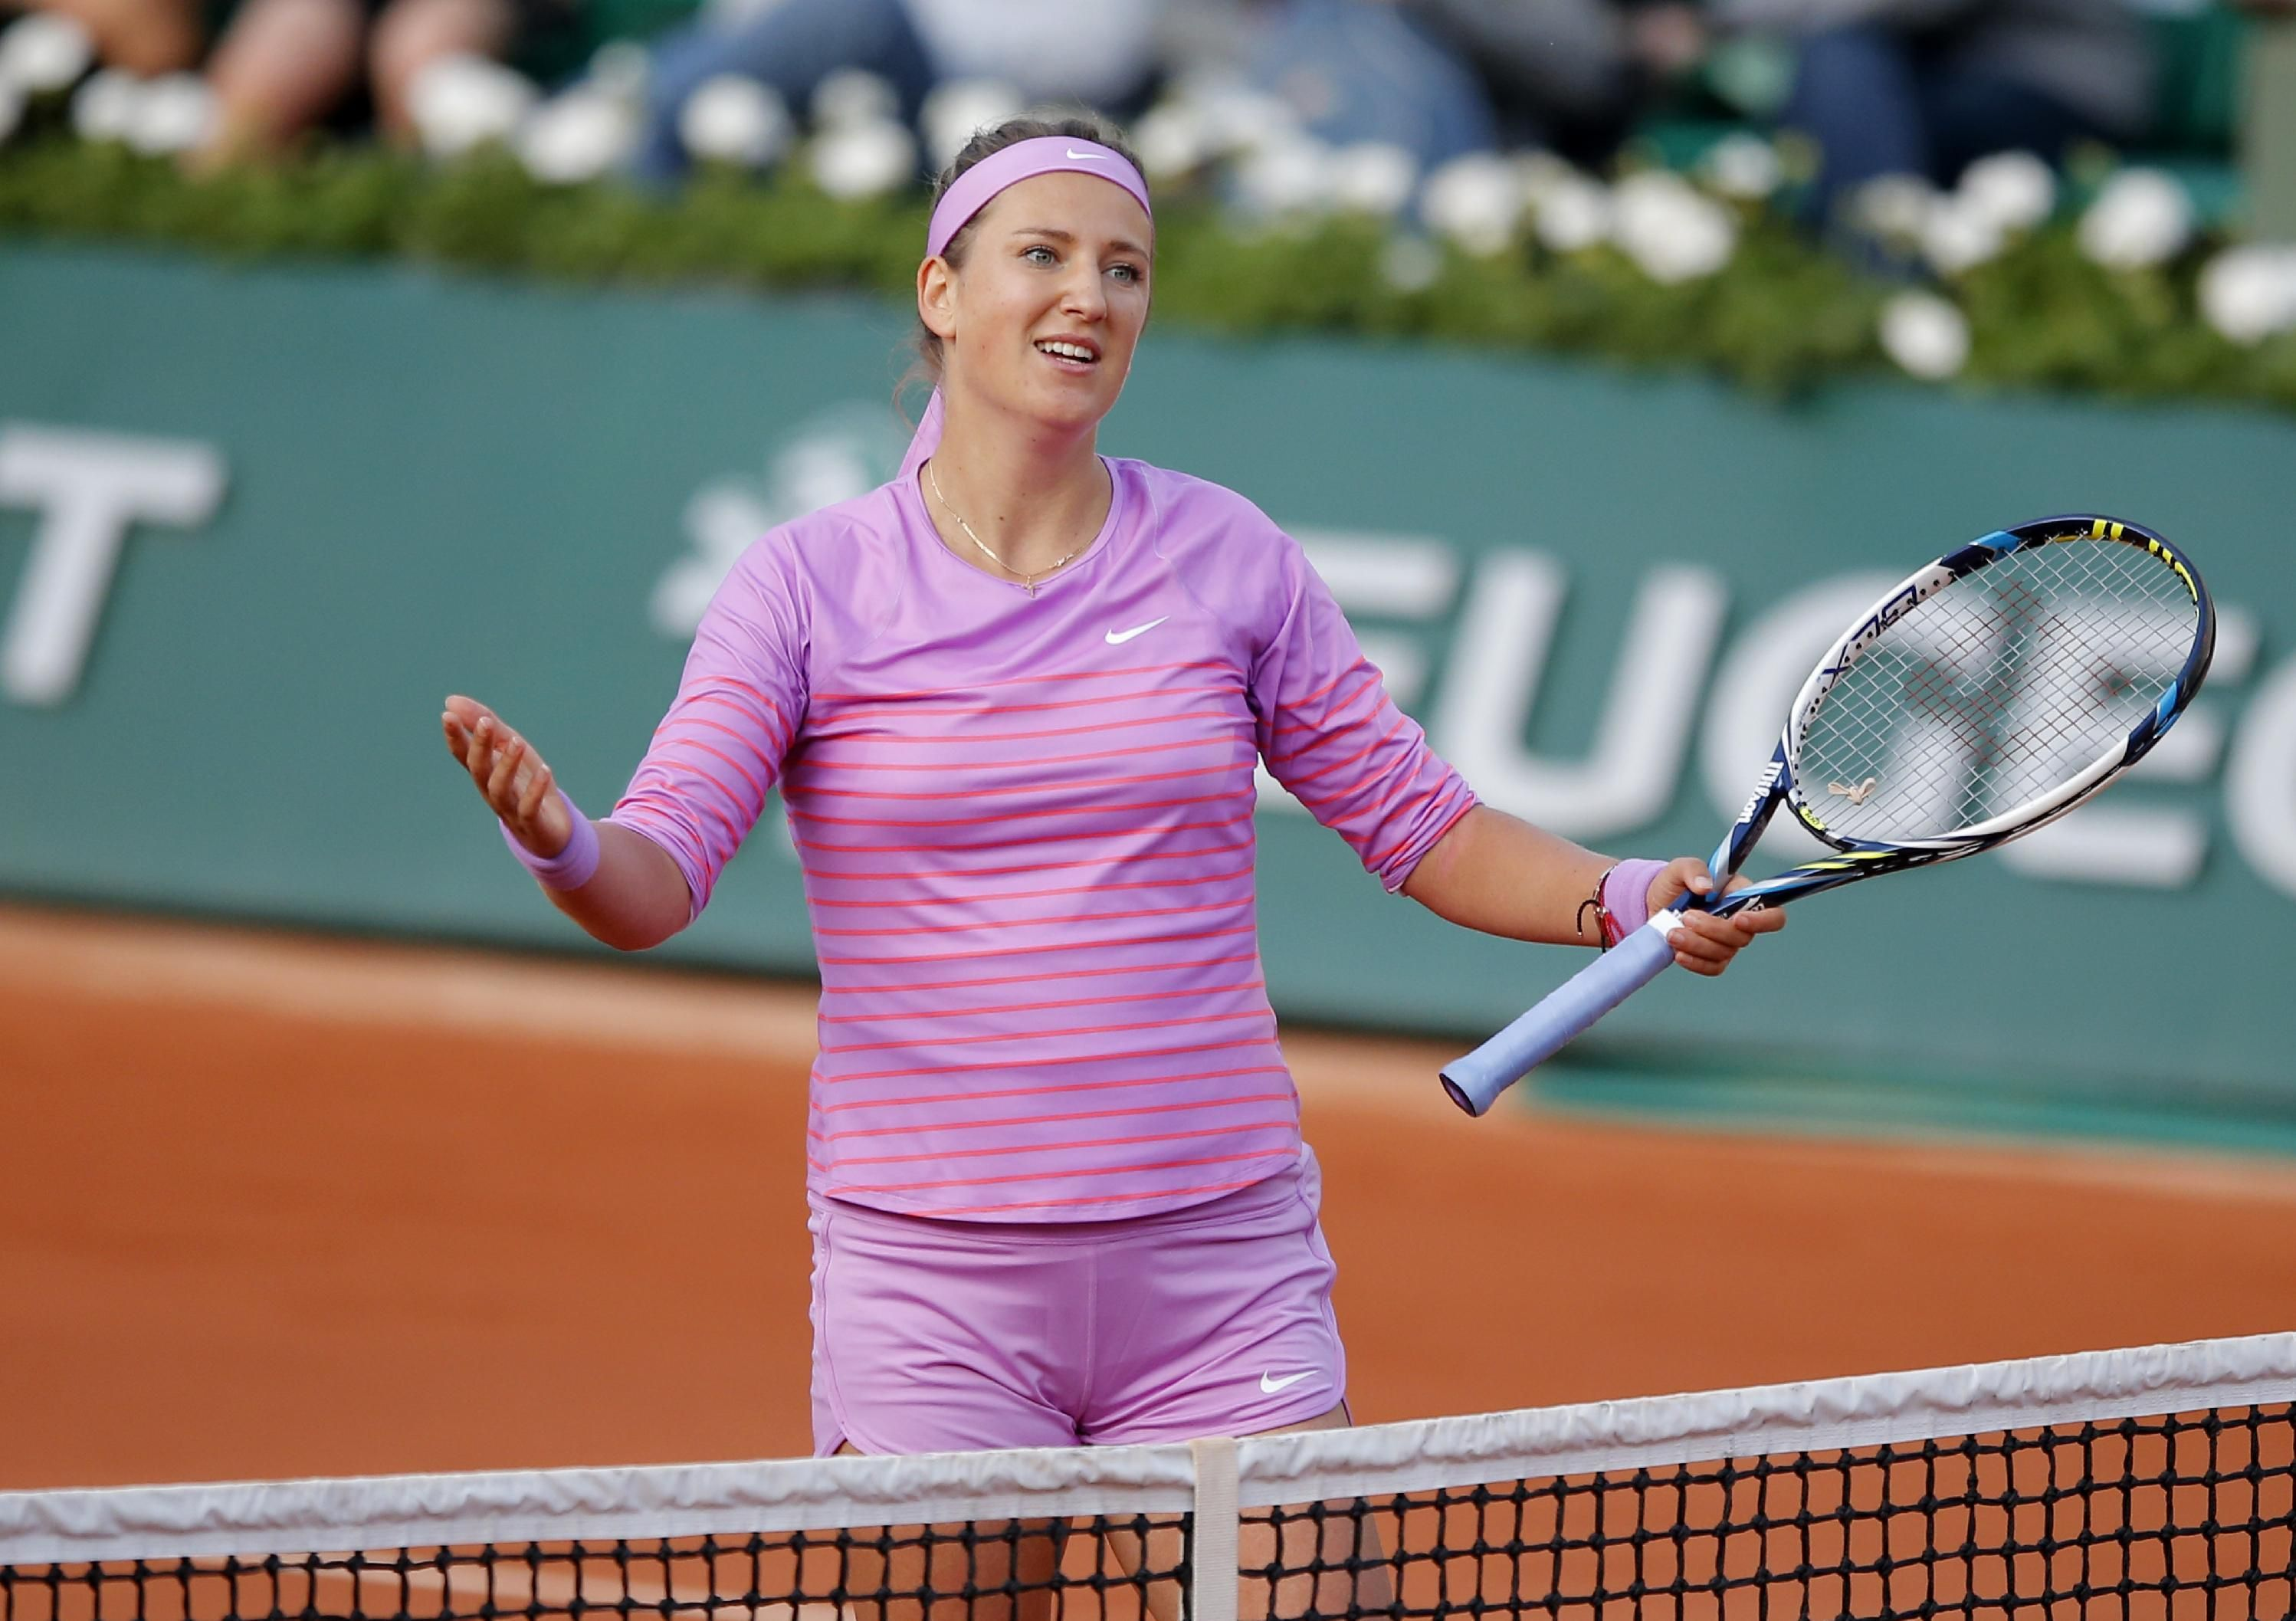 Two-time finalist Azarenka misses direct entry for US Open